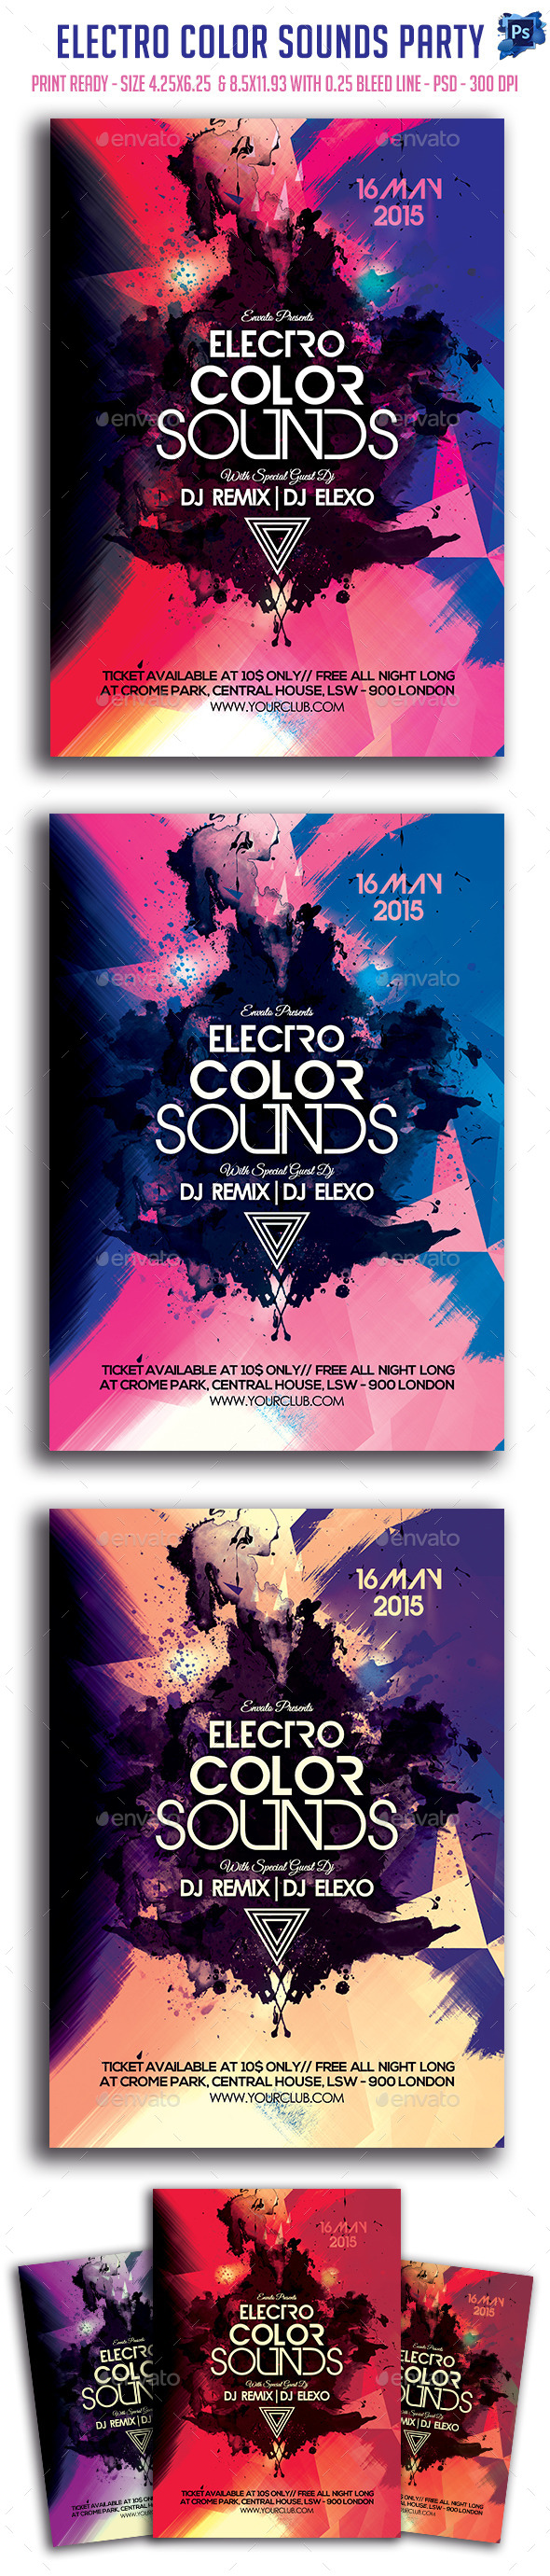 GraphicRiver Electro Color Sounds Party Flyer 11589947